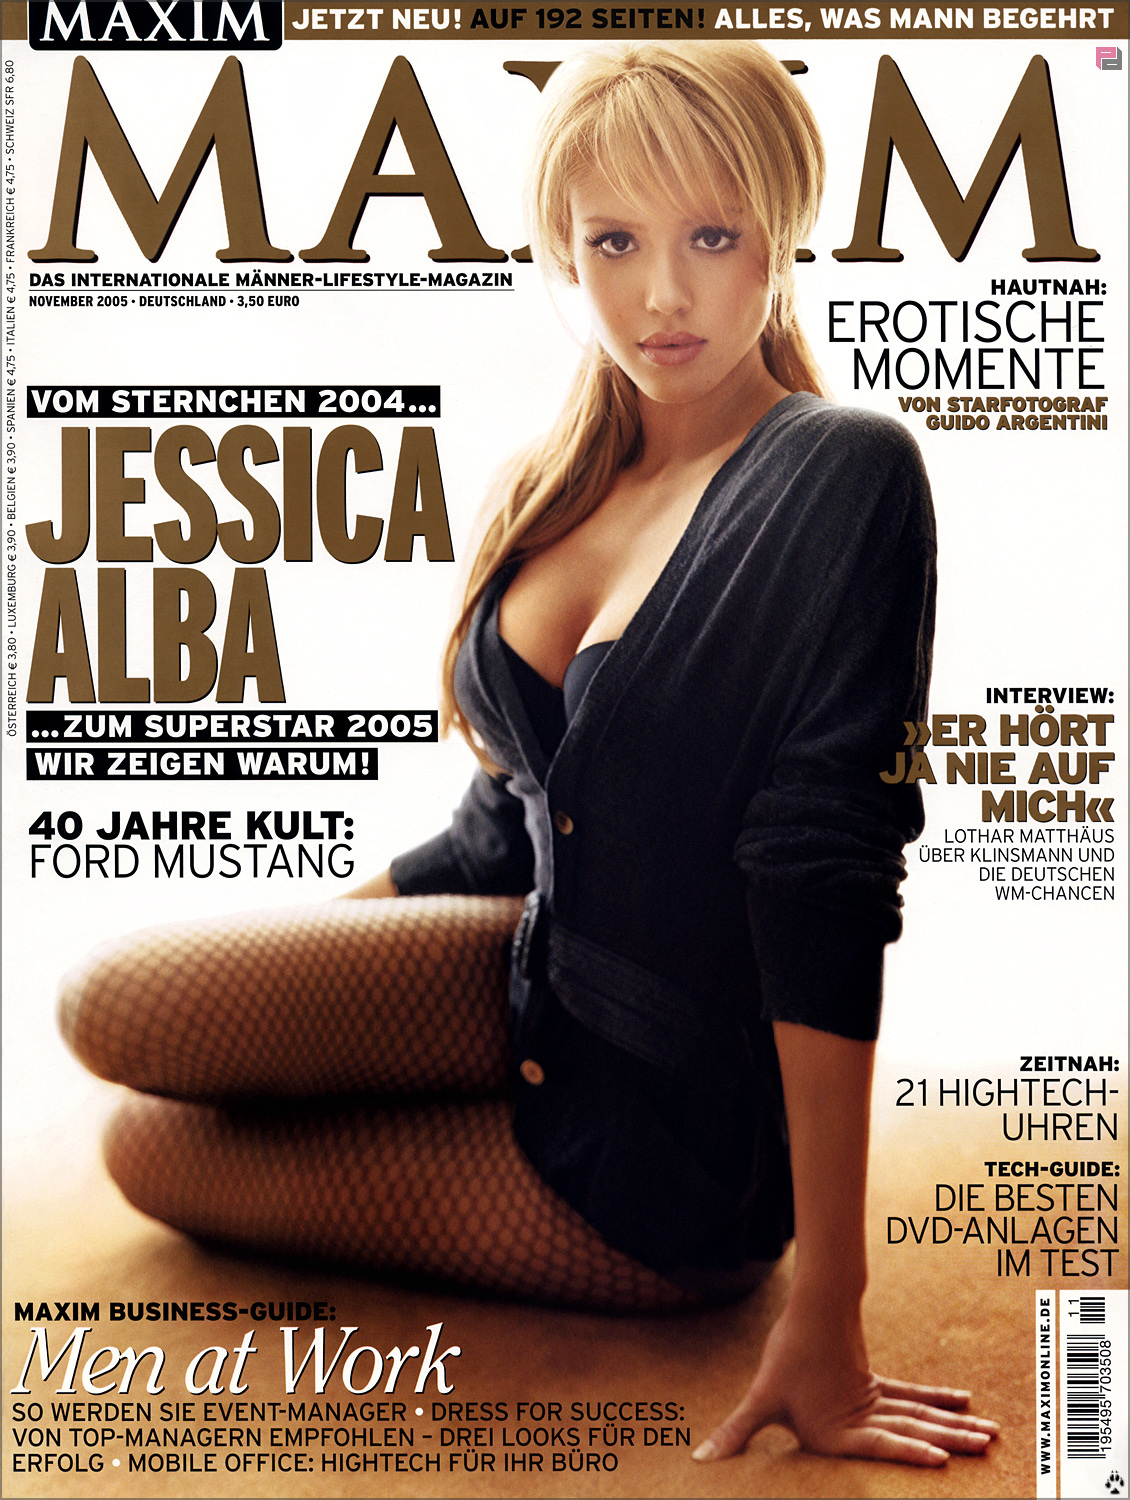 Jessica alba Maxim Magazine HD Wallpaper